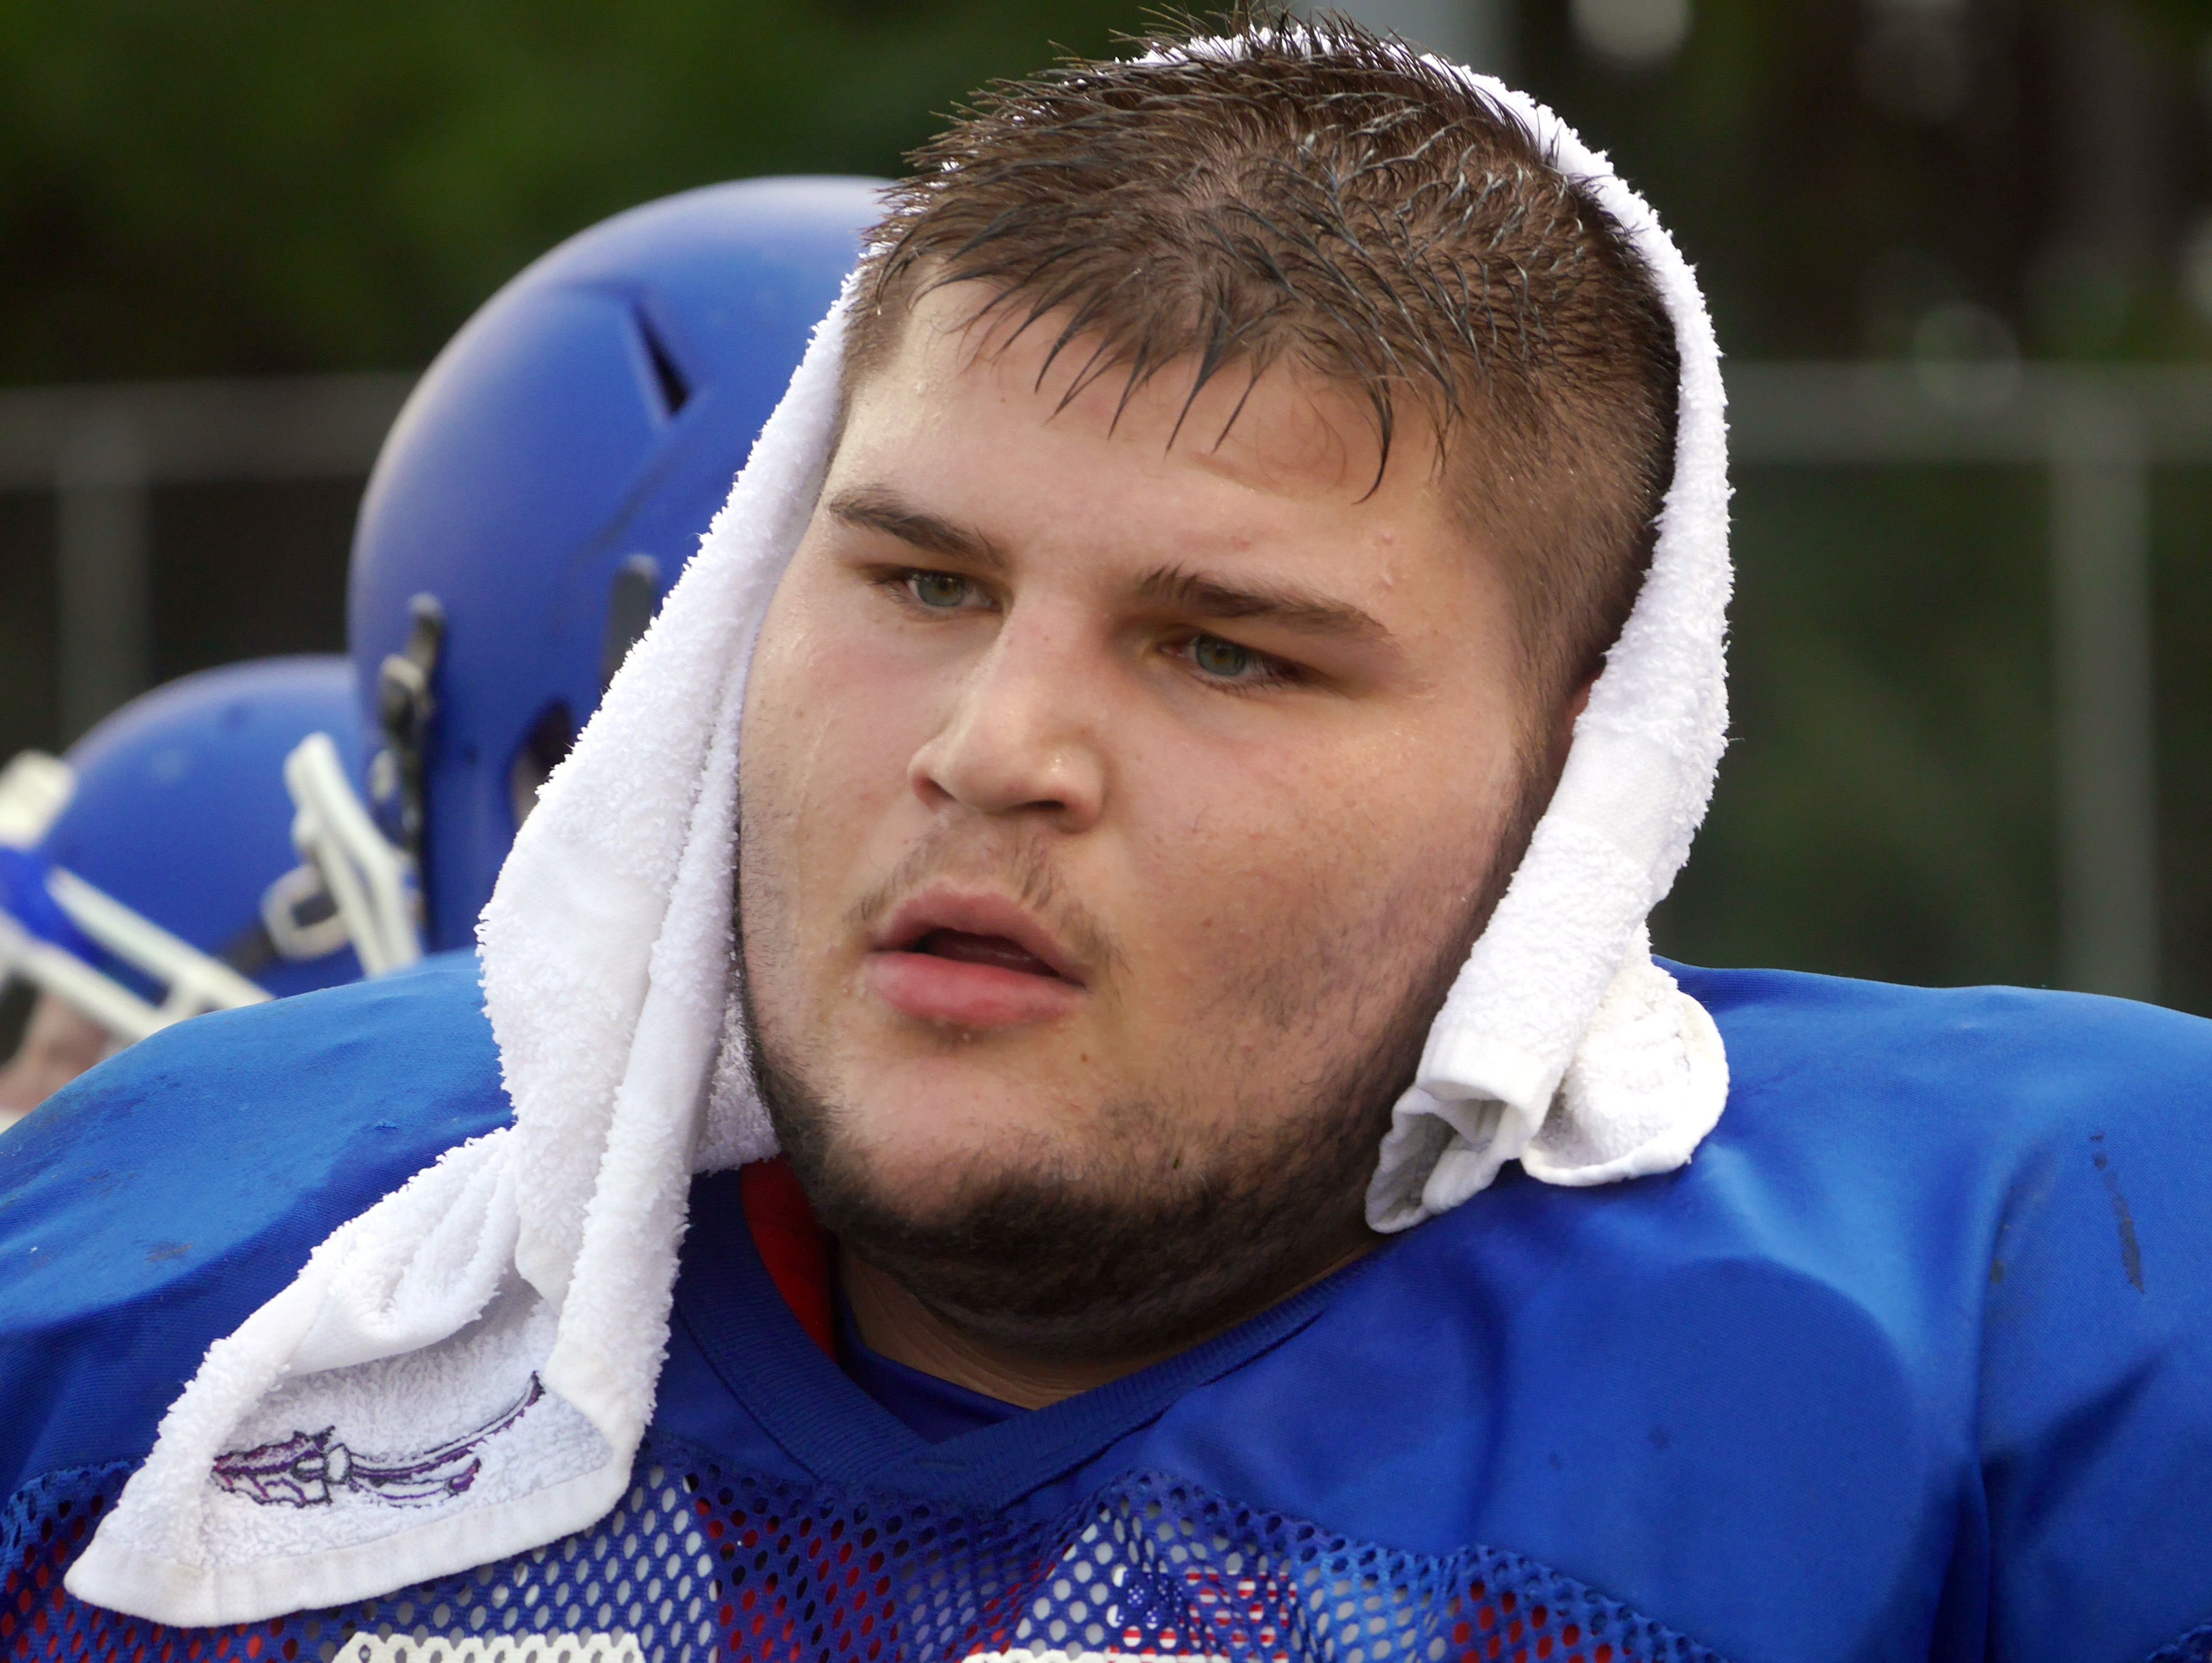 Fort Defiance #66 Zachery Boyers stays cool with a cold towel over his head during their scrimmage against James River at the Riverheads High School 2016 football jamboree on Aug. 20, 2016.